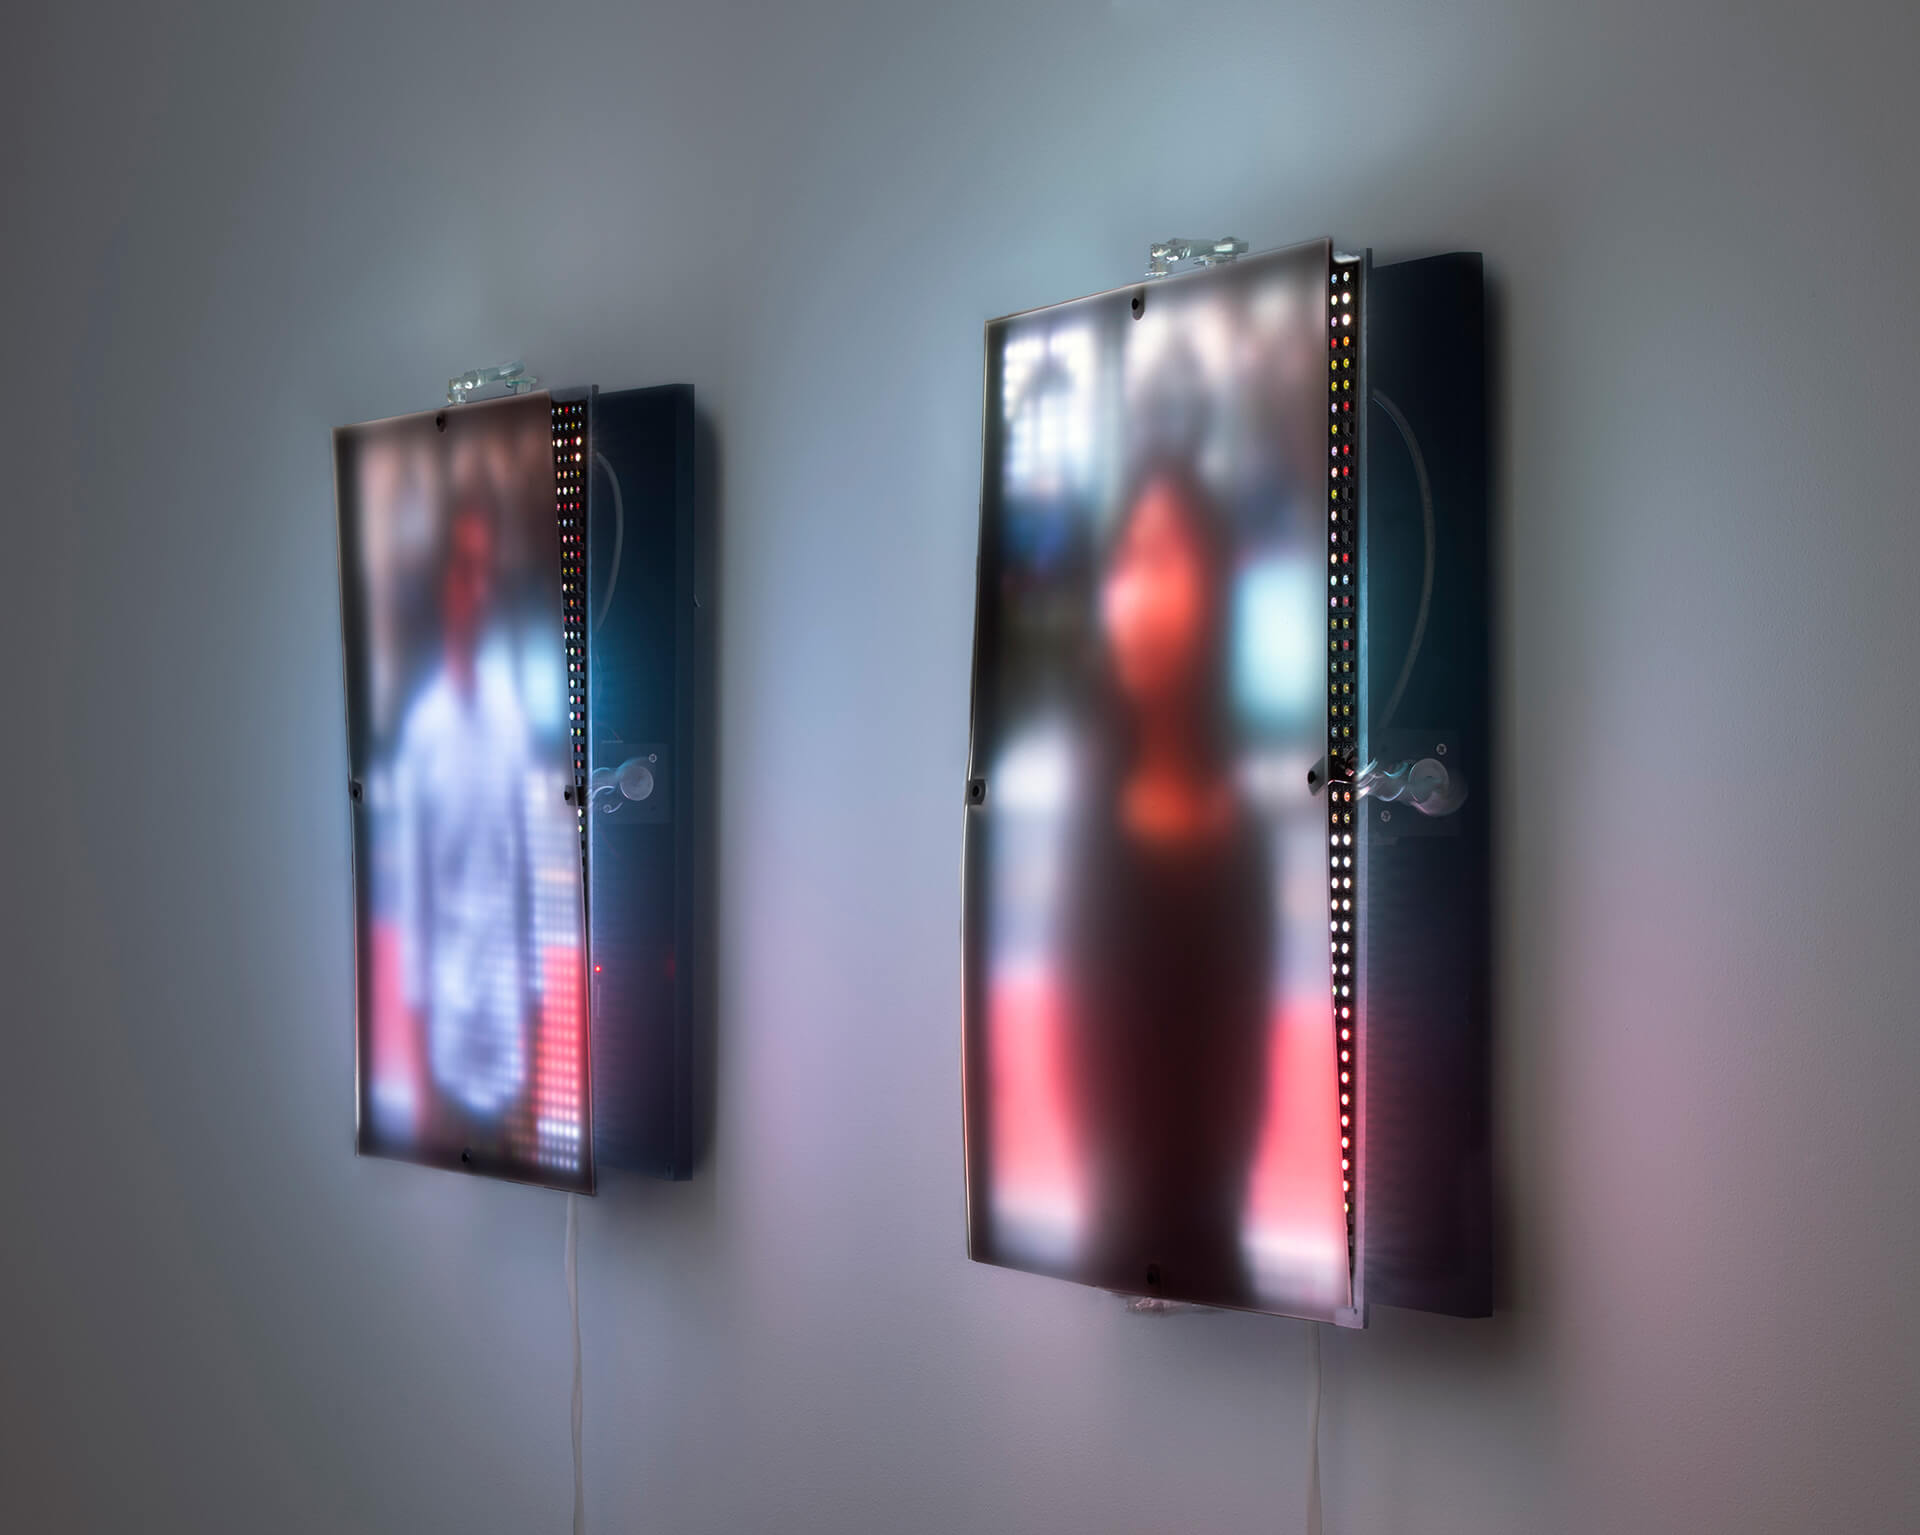 'Seen at a Distance' (2020) is a series of light portraits by Chamo, which uses diffusion materials and elevations to distort the image | Sheer Appearances | Barak Chamo | STIRworld